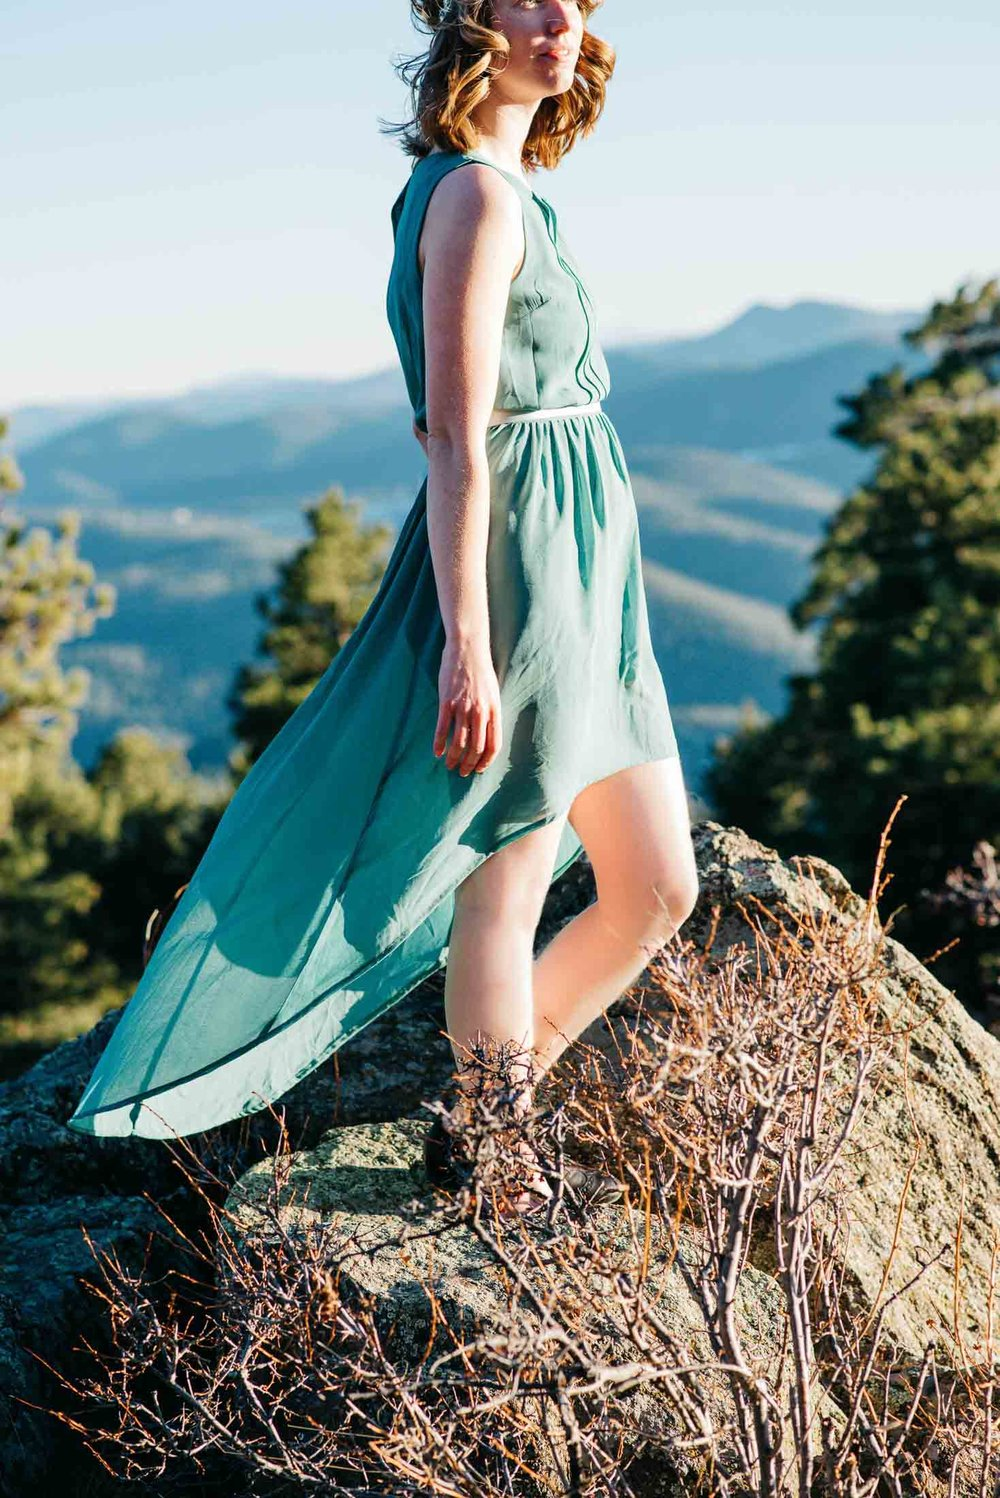 23-emmy-searching-for-the-light-photography-colorado-photographer-elopement-photographer-dance-photographer-couple-photographer_mountain-wedding-photographer-self-portraits-2016-204.jpg